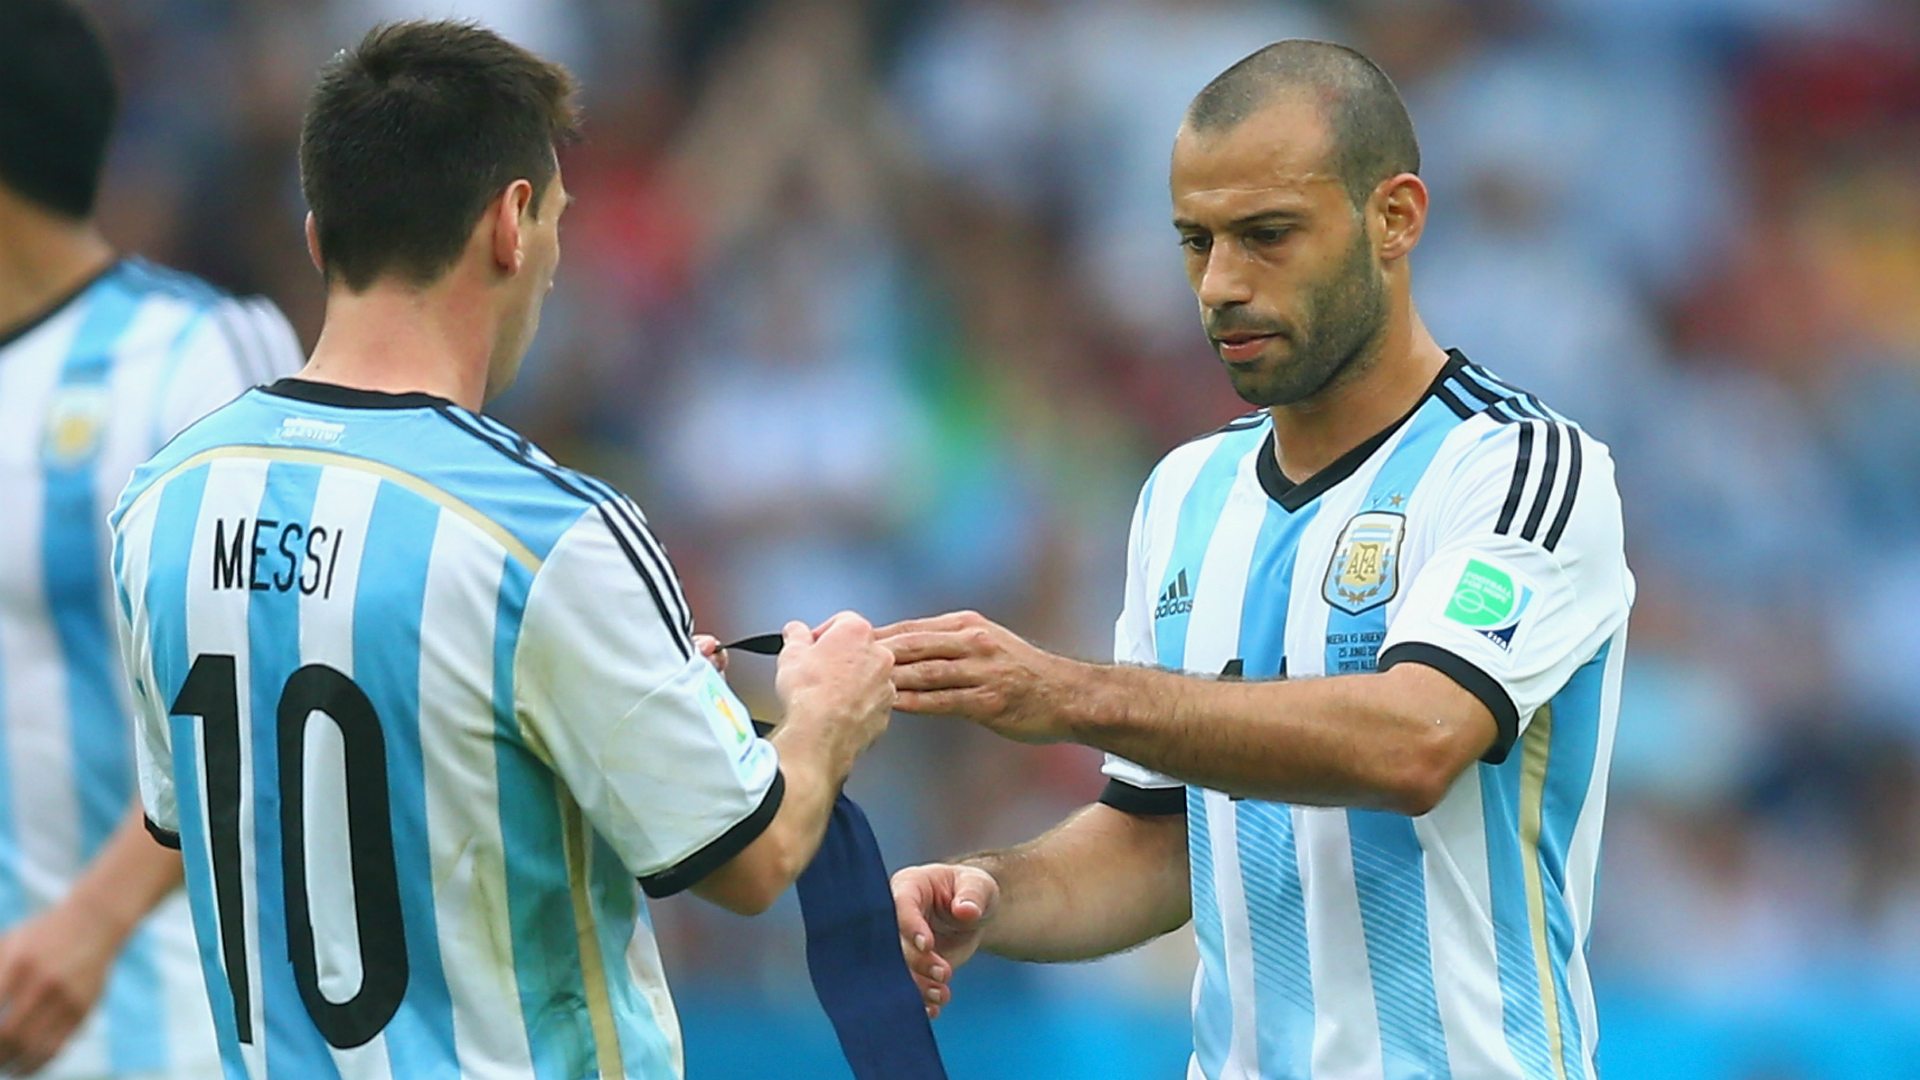 Sampaoli Mascherano could leave Russia out of the World